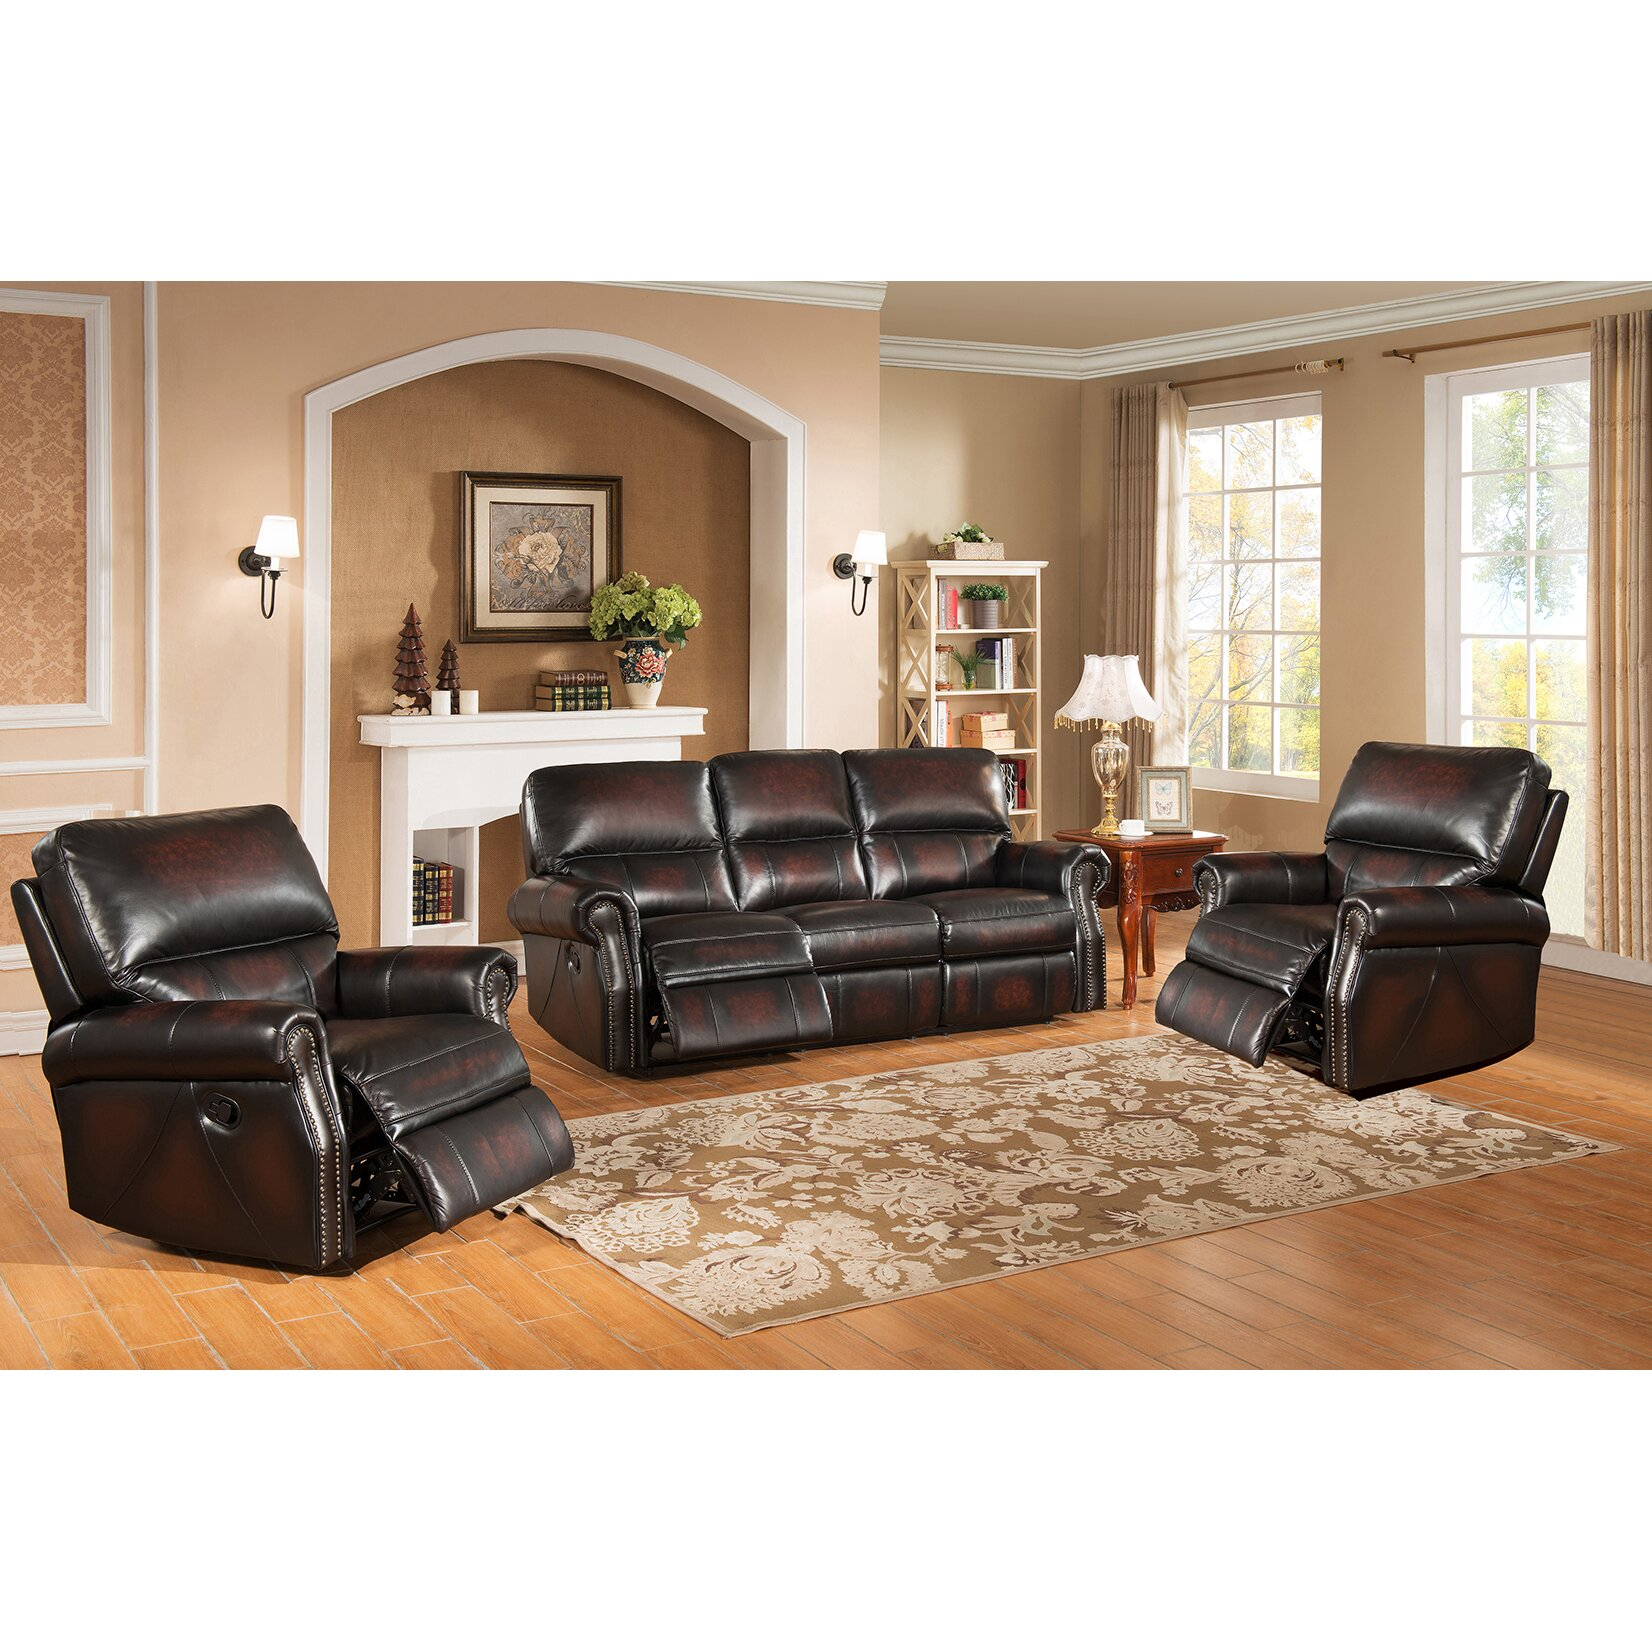 Three Piece Leather Living Room Set. Best Prices On Kitchen Cabinets. Douglas Kitchens. How To Replace A Single Handle Kitchen Faucet. Circo Play Kitchen. Hot Pink Kitchen Accessories. Kitchen Collage Edwards Co. Contemporary Kitchen Window Treatments. Wood Berry Kitchen